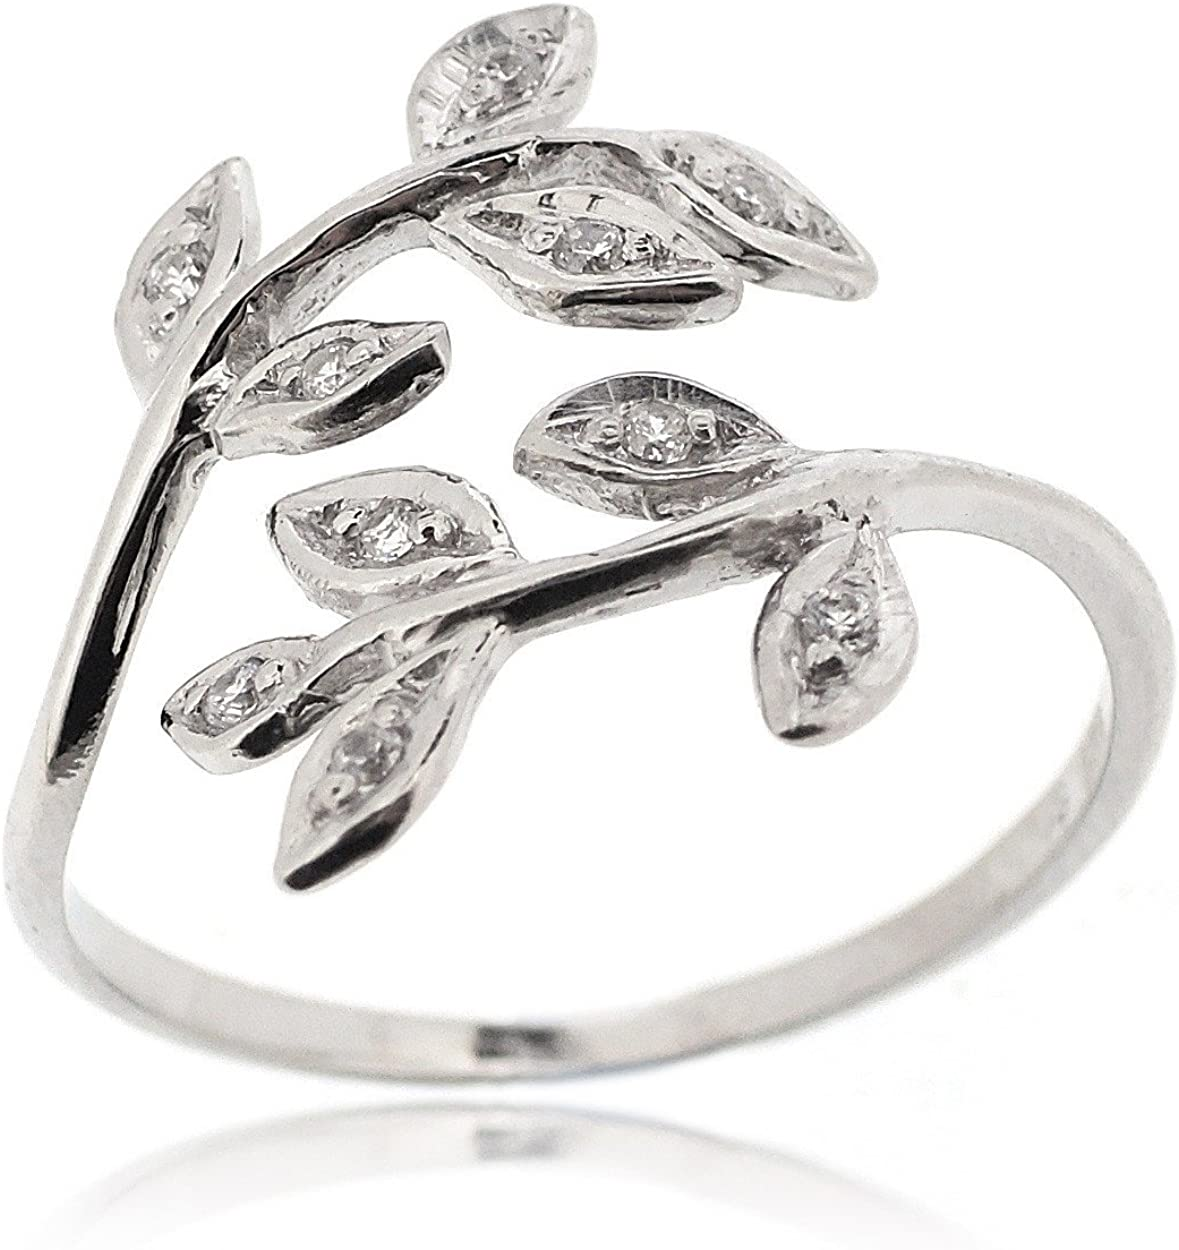 Stylish /&Trendy Nickel Free Ring Sovats Triangle Ring for Women Set with White Cubic Zirconia 925 Sterling Silver Rhodium Plated Simple